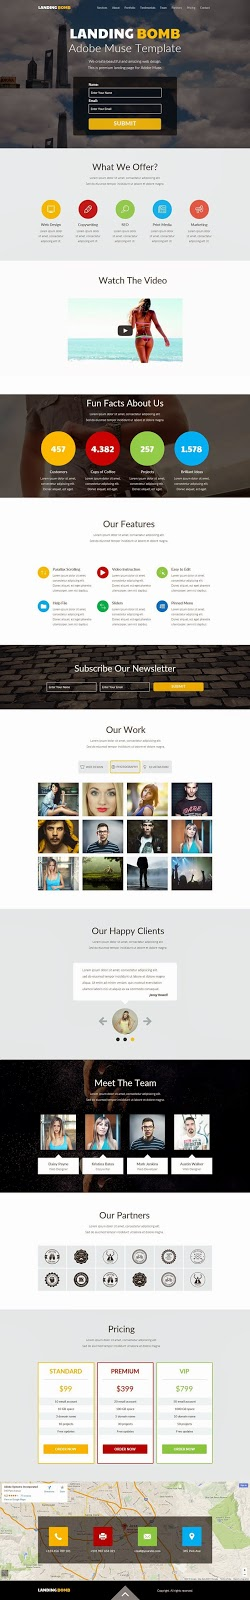 Premium Landing Page Muse Template 2015